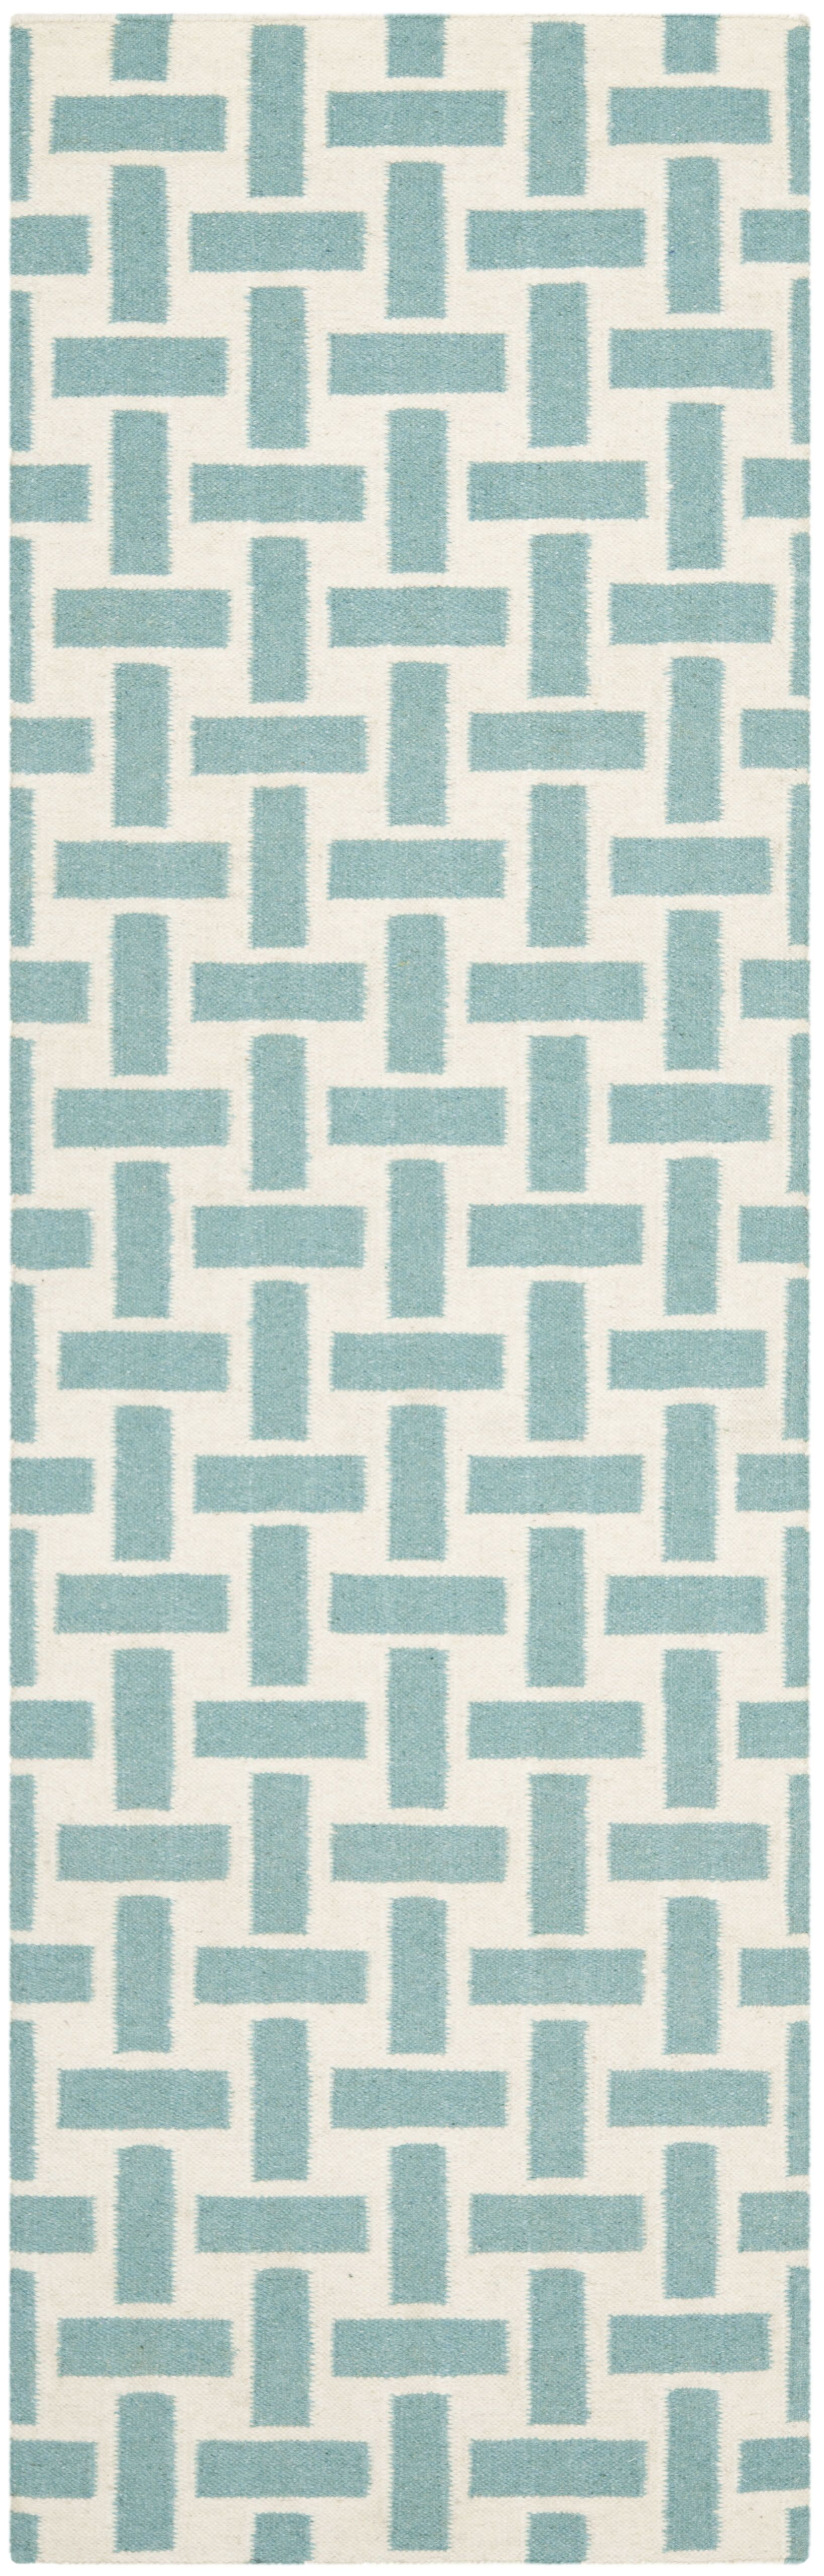 Masaryktown Hand-Woven Turquoise & Ivory Area Rug Rug Size: Runner 2'6